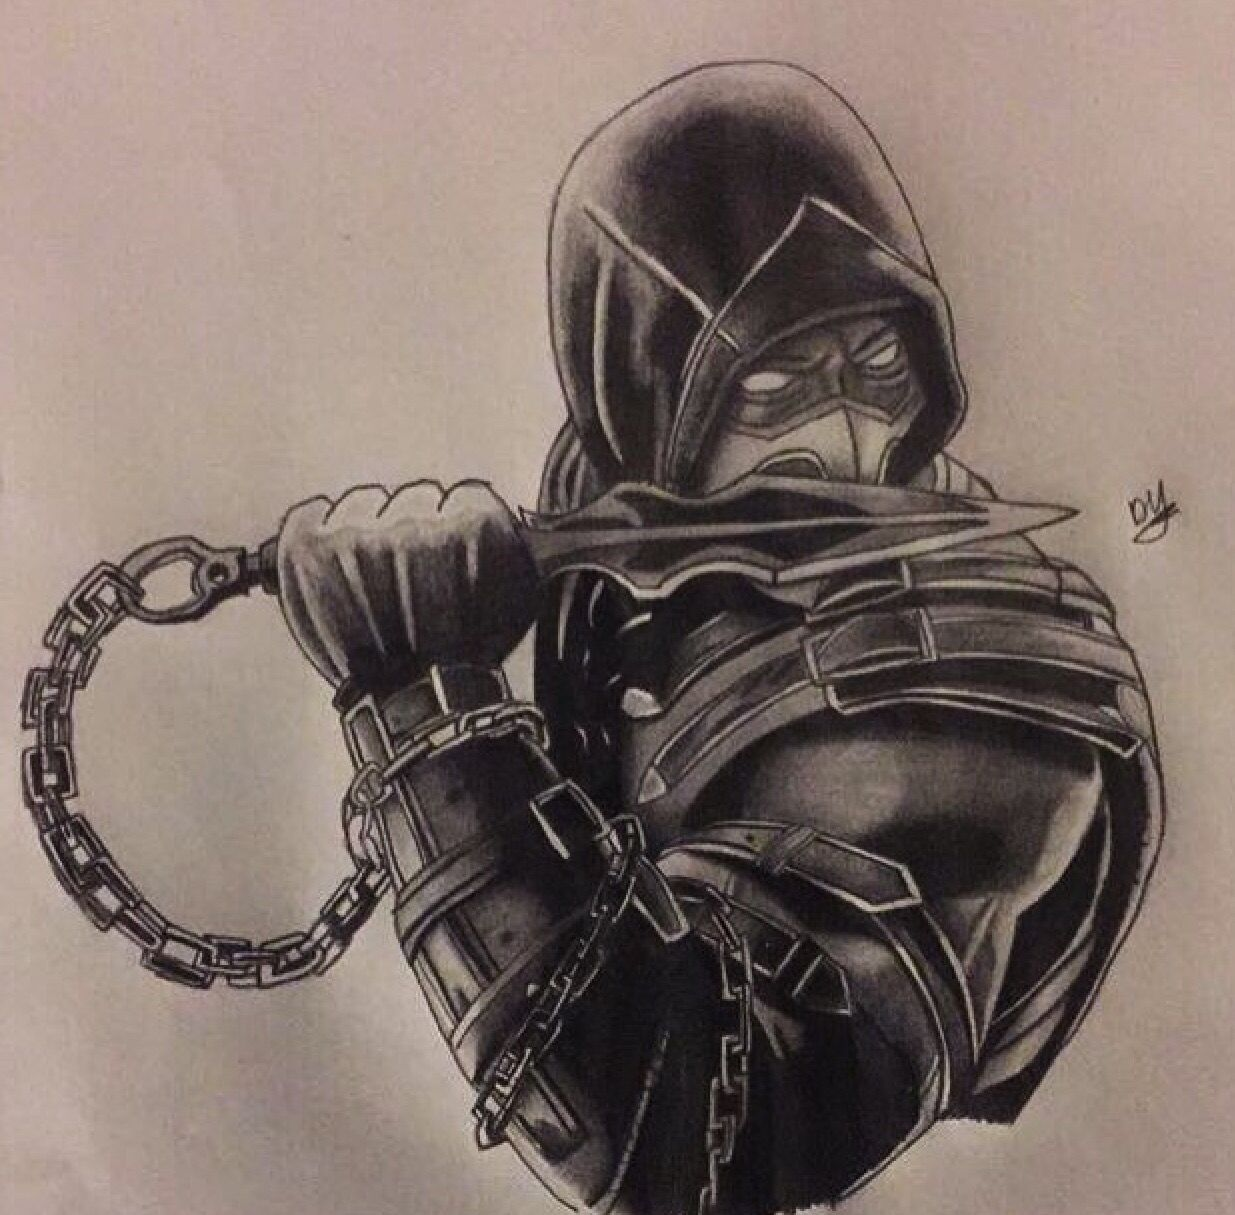 Scorpion from Mortal Kombat drawing | Character drawings ...